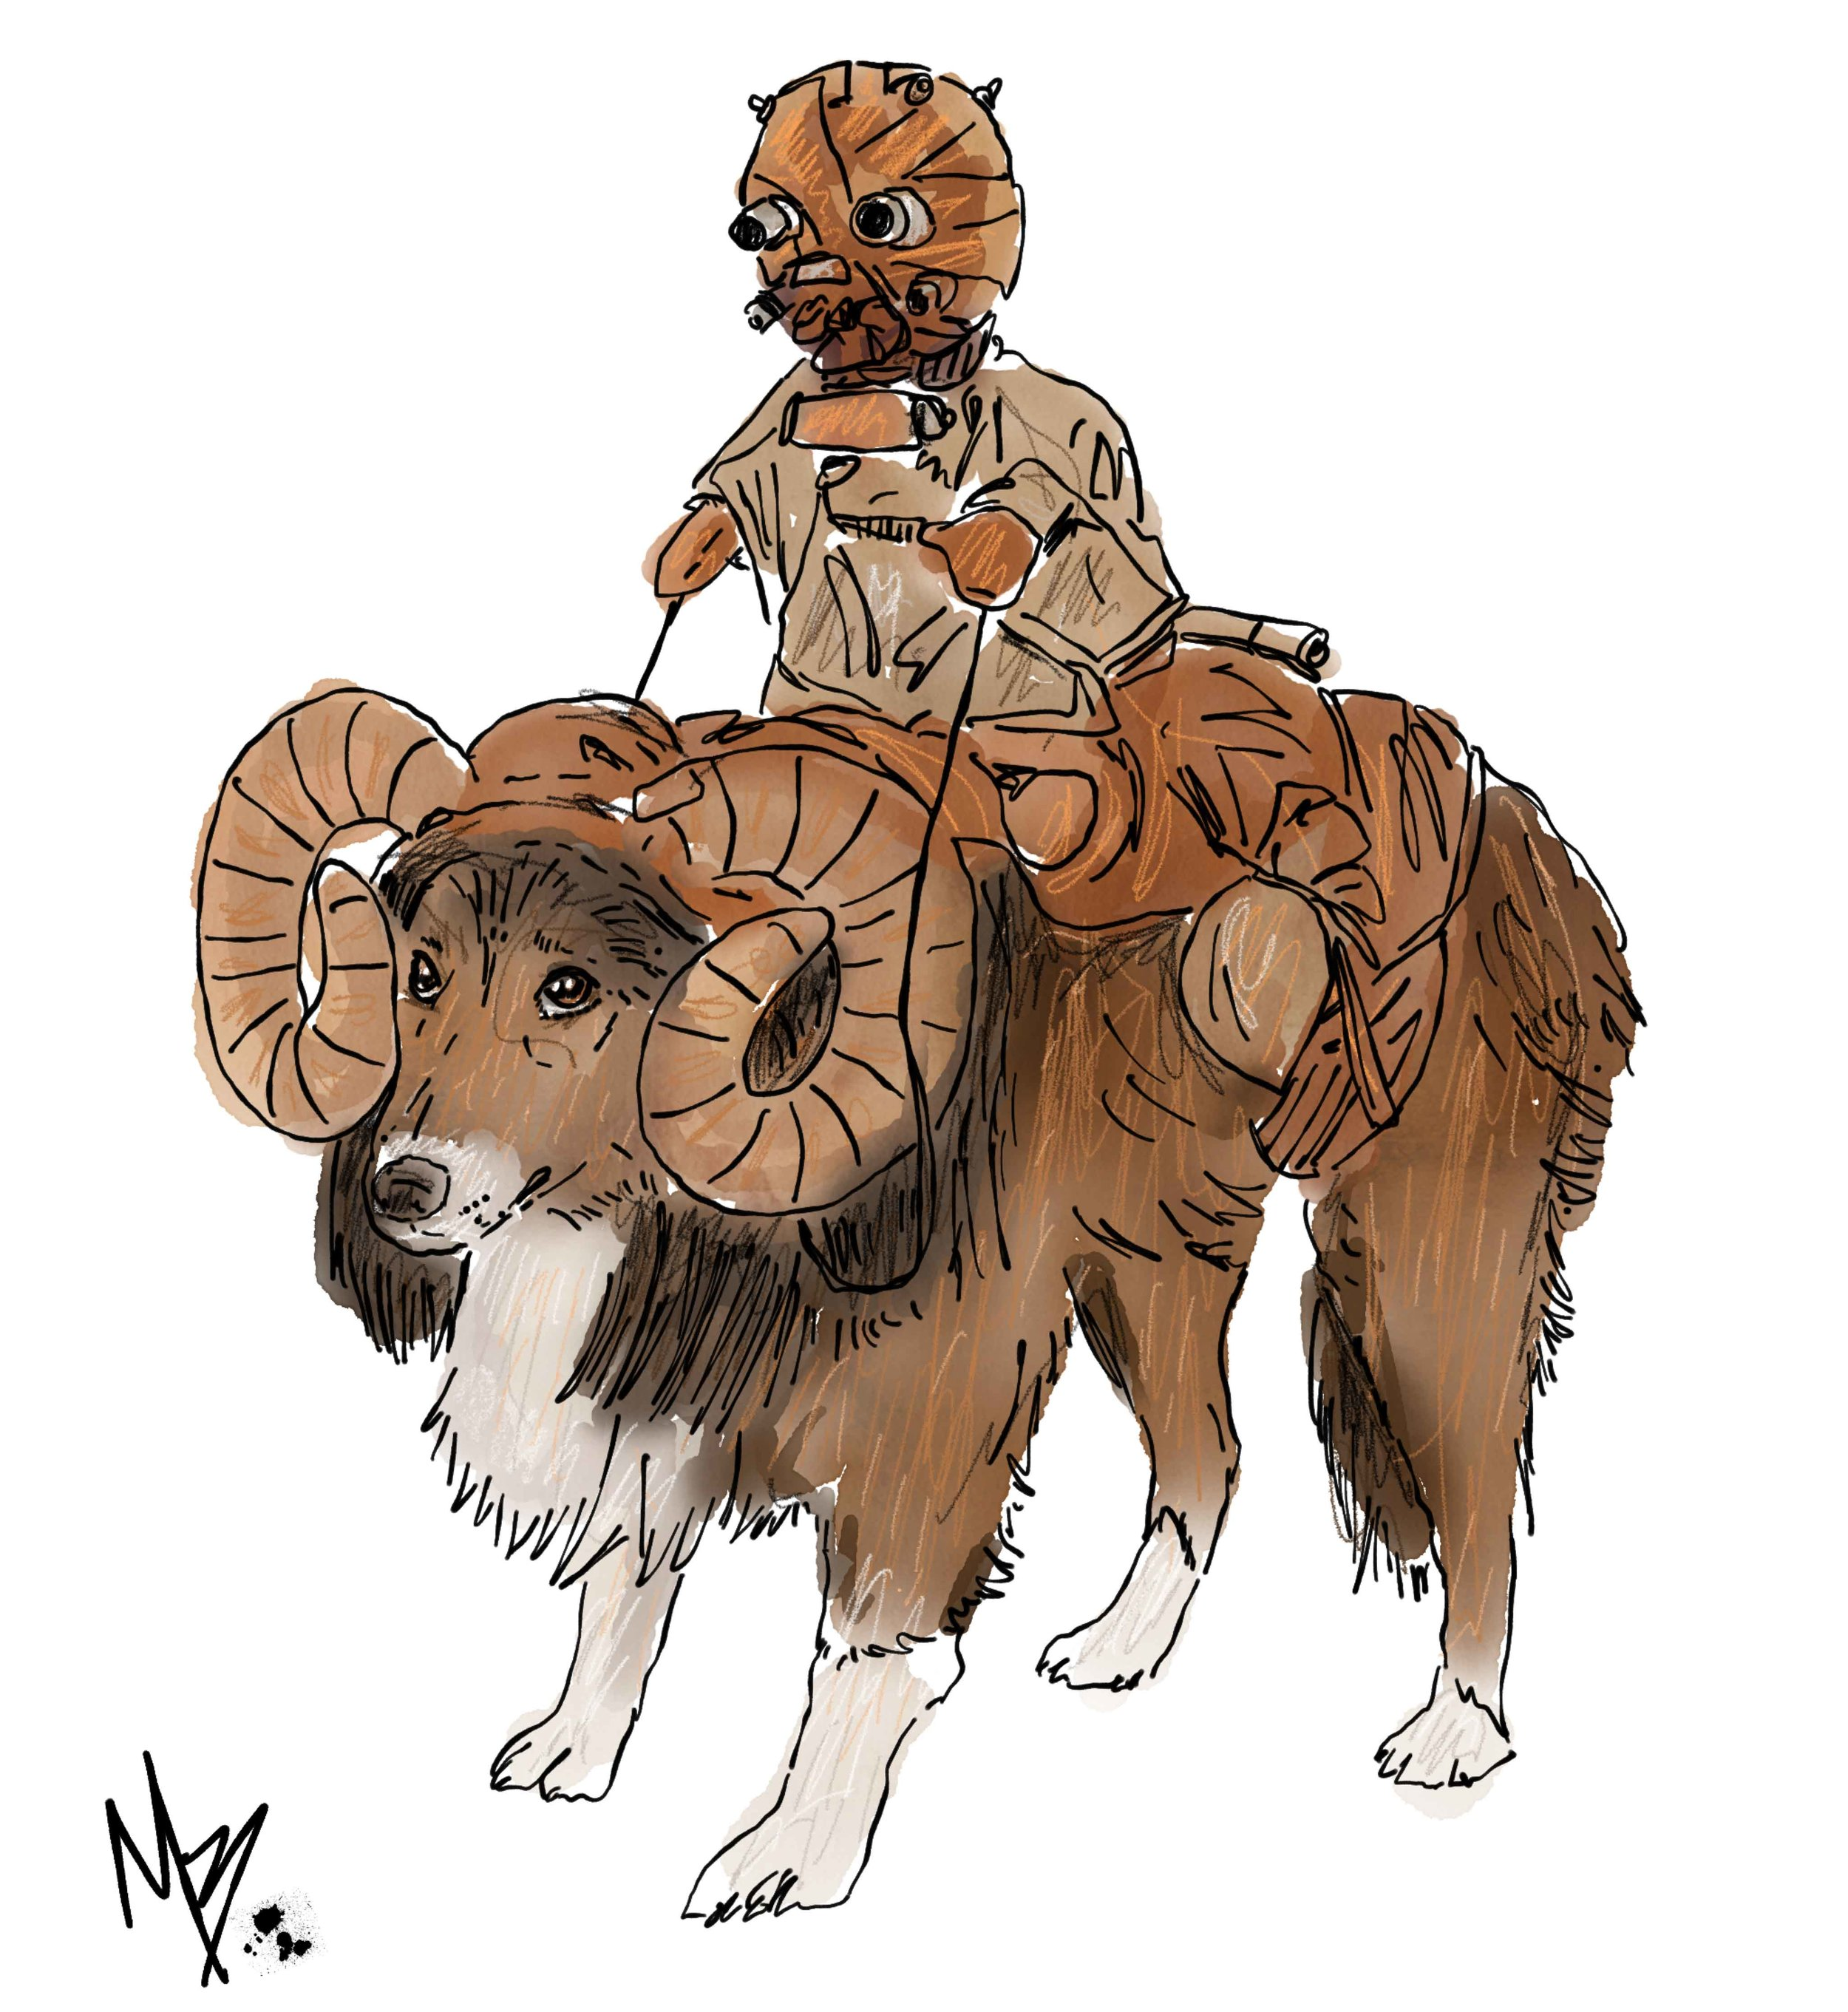 Who wouldn't want to dress their dog up as a Bantha complete with Tuscan Raider? (If you're not a Star Wars nerd, this might be over your head...)